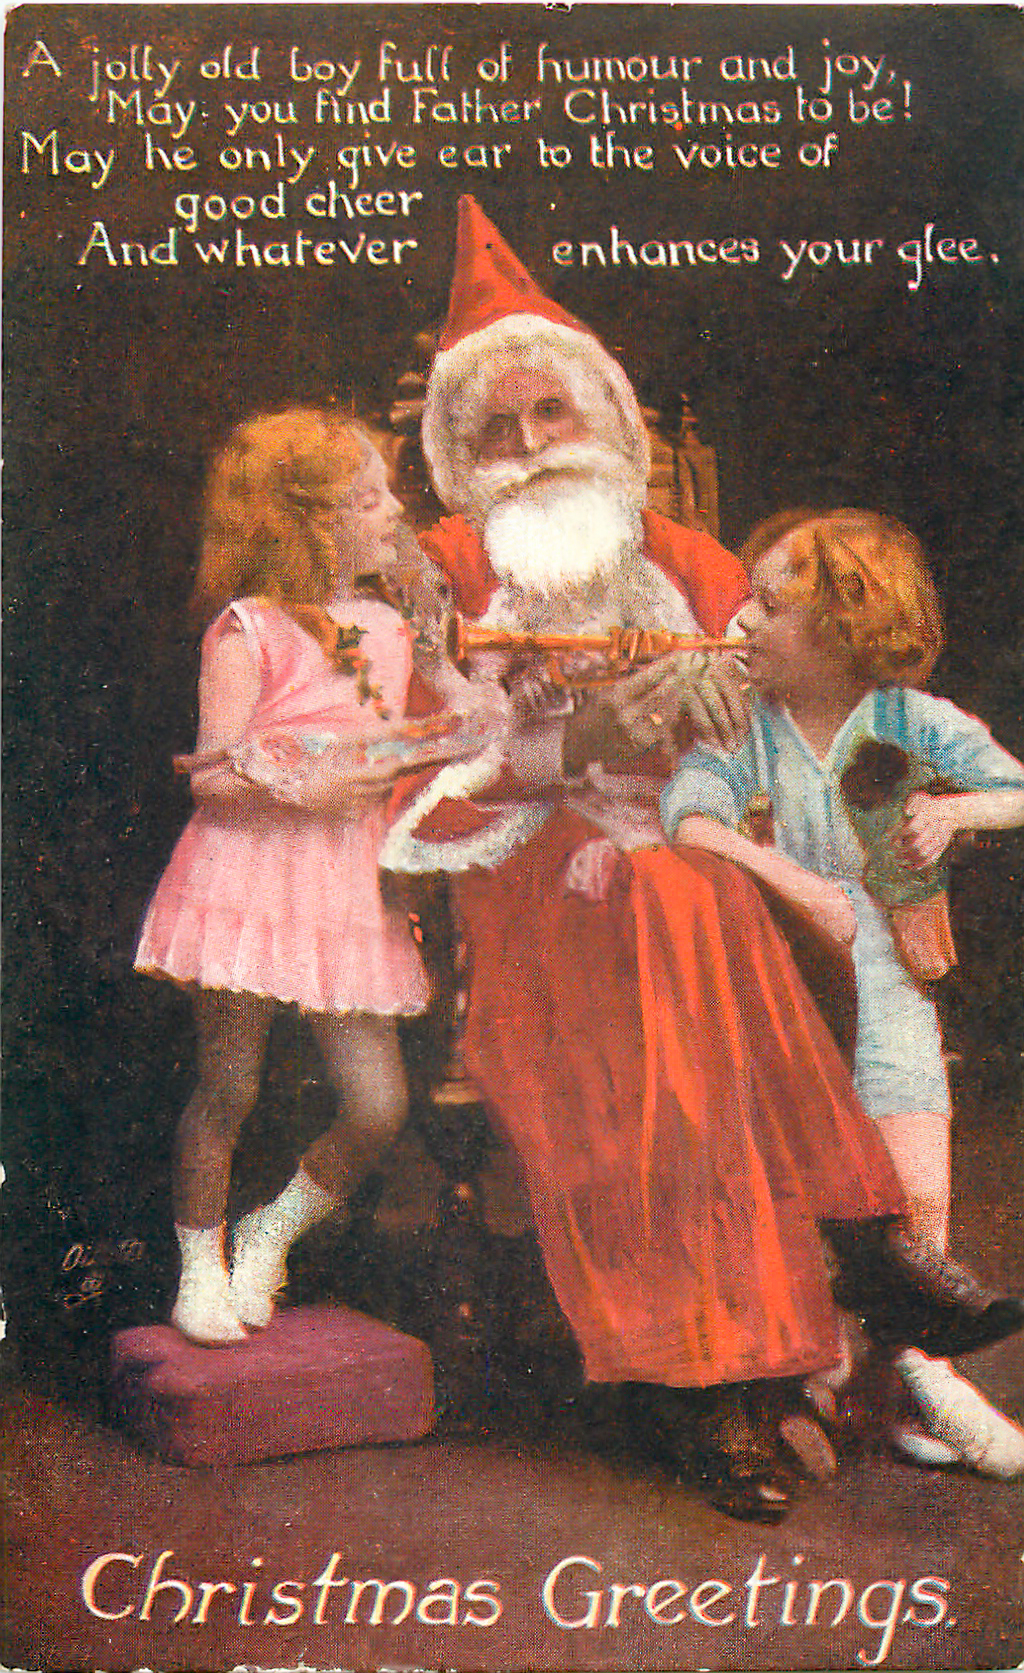 Father Christmas - Wikipedia